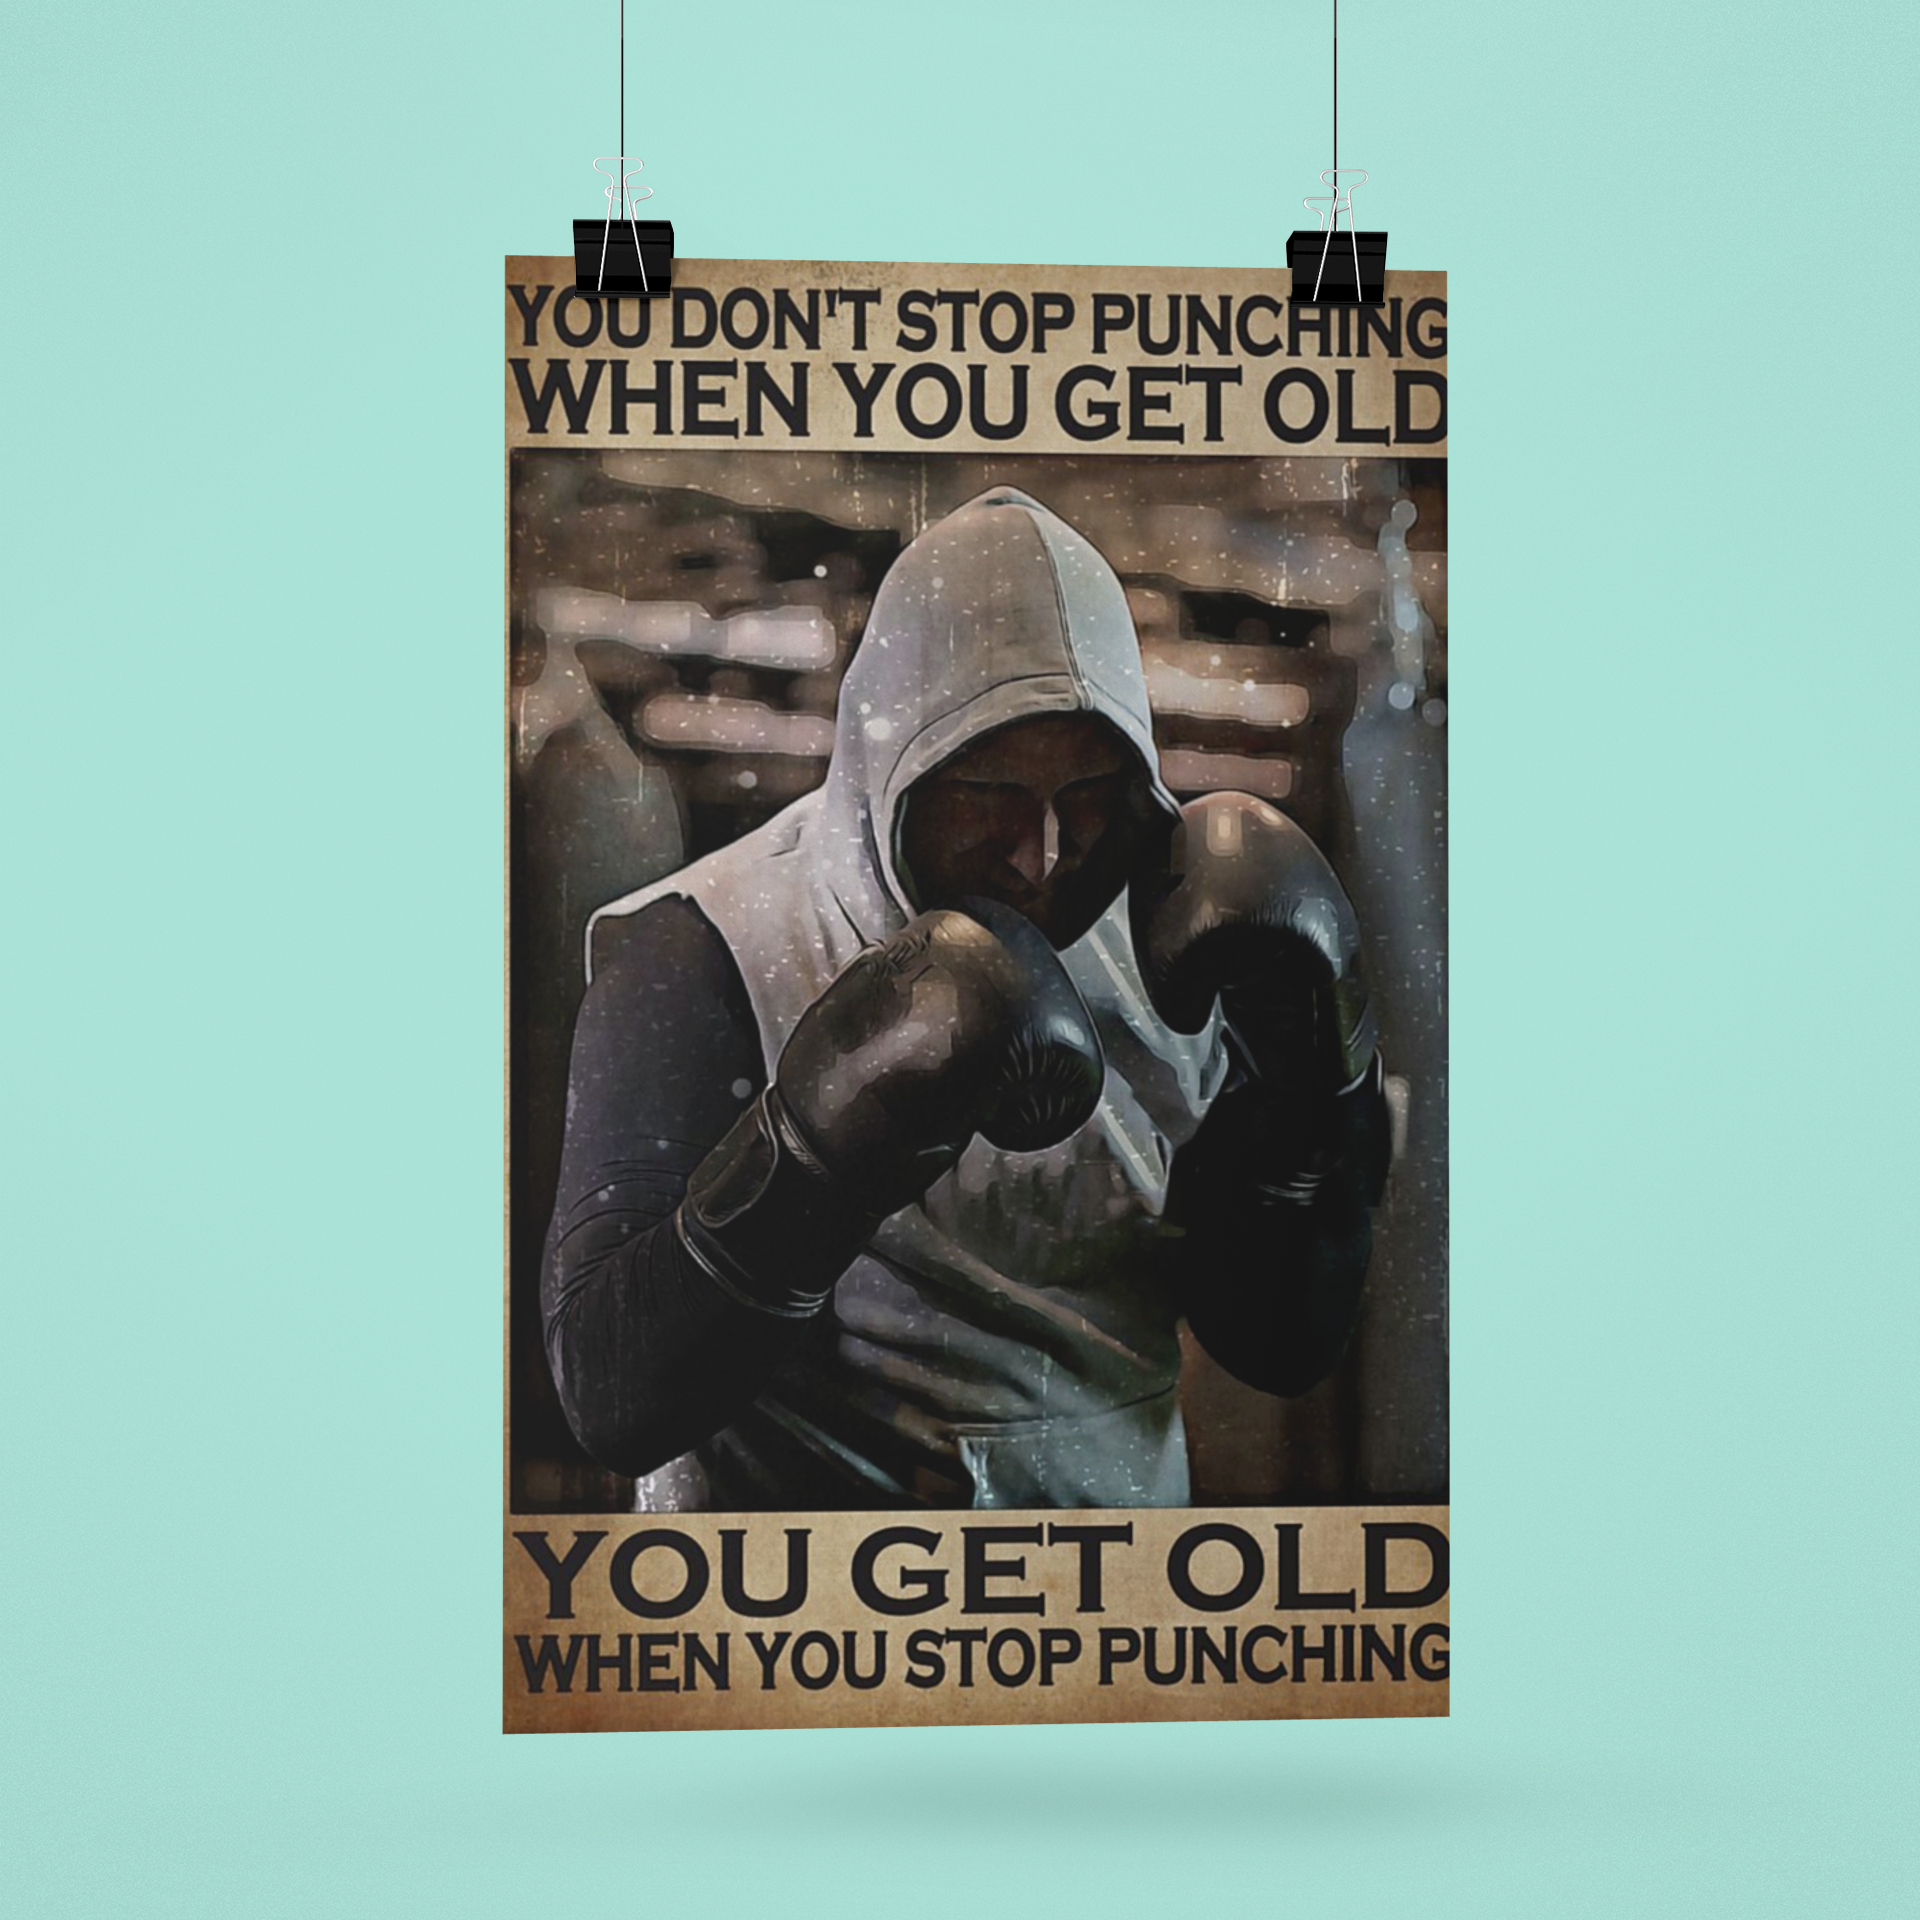 [BEST] Poster You don't stop punching when you get old